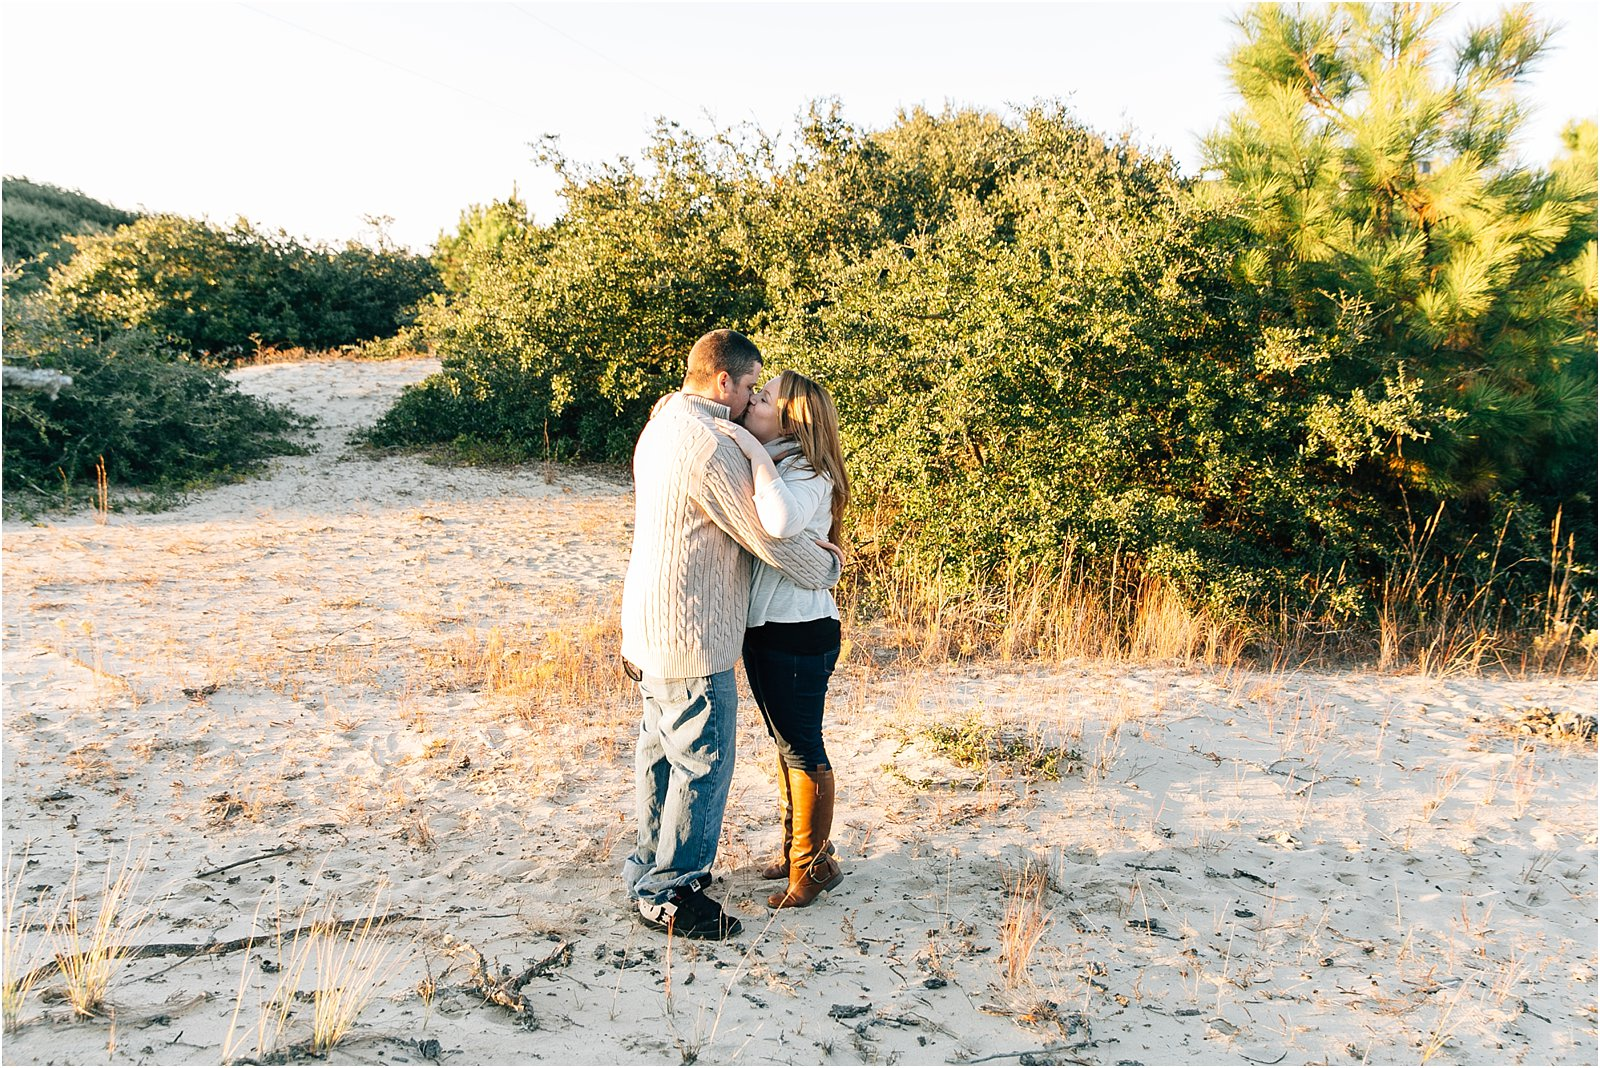 jessica_ryan_photography_pumpkin_patch_engagement_portraits_fall_october_engagements_virginia_beach_chesapeake_0322